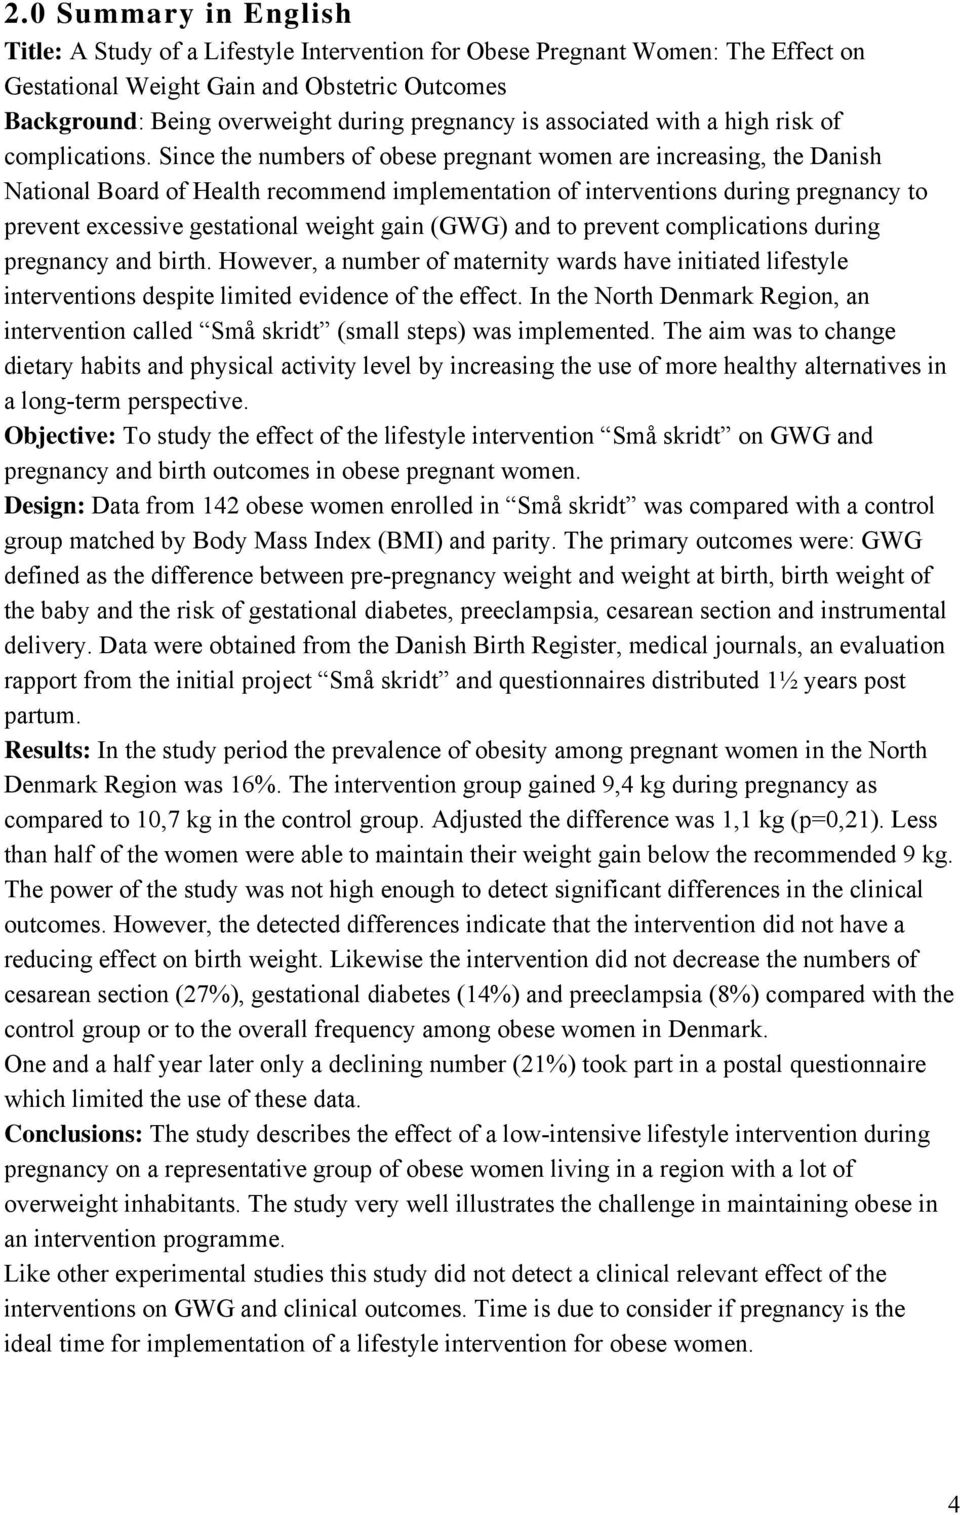 Since the numbers of obese pregnant women are increasing, the Danish National Board of Health recommend implementation of interventions during pregnancy to prevent excessive gestational weight gain